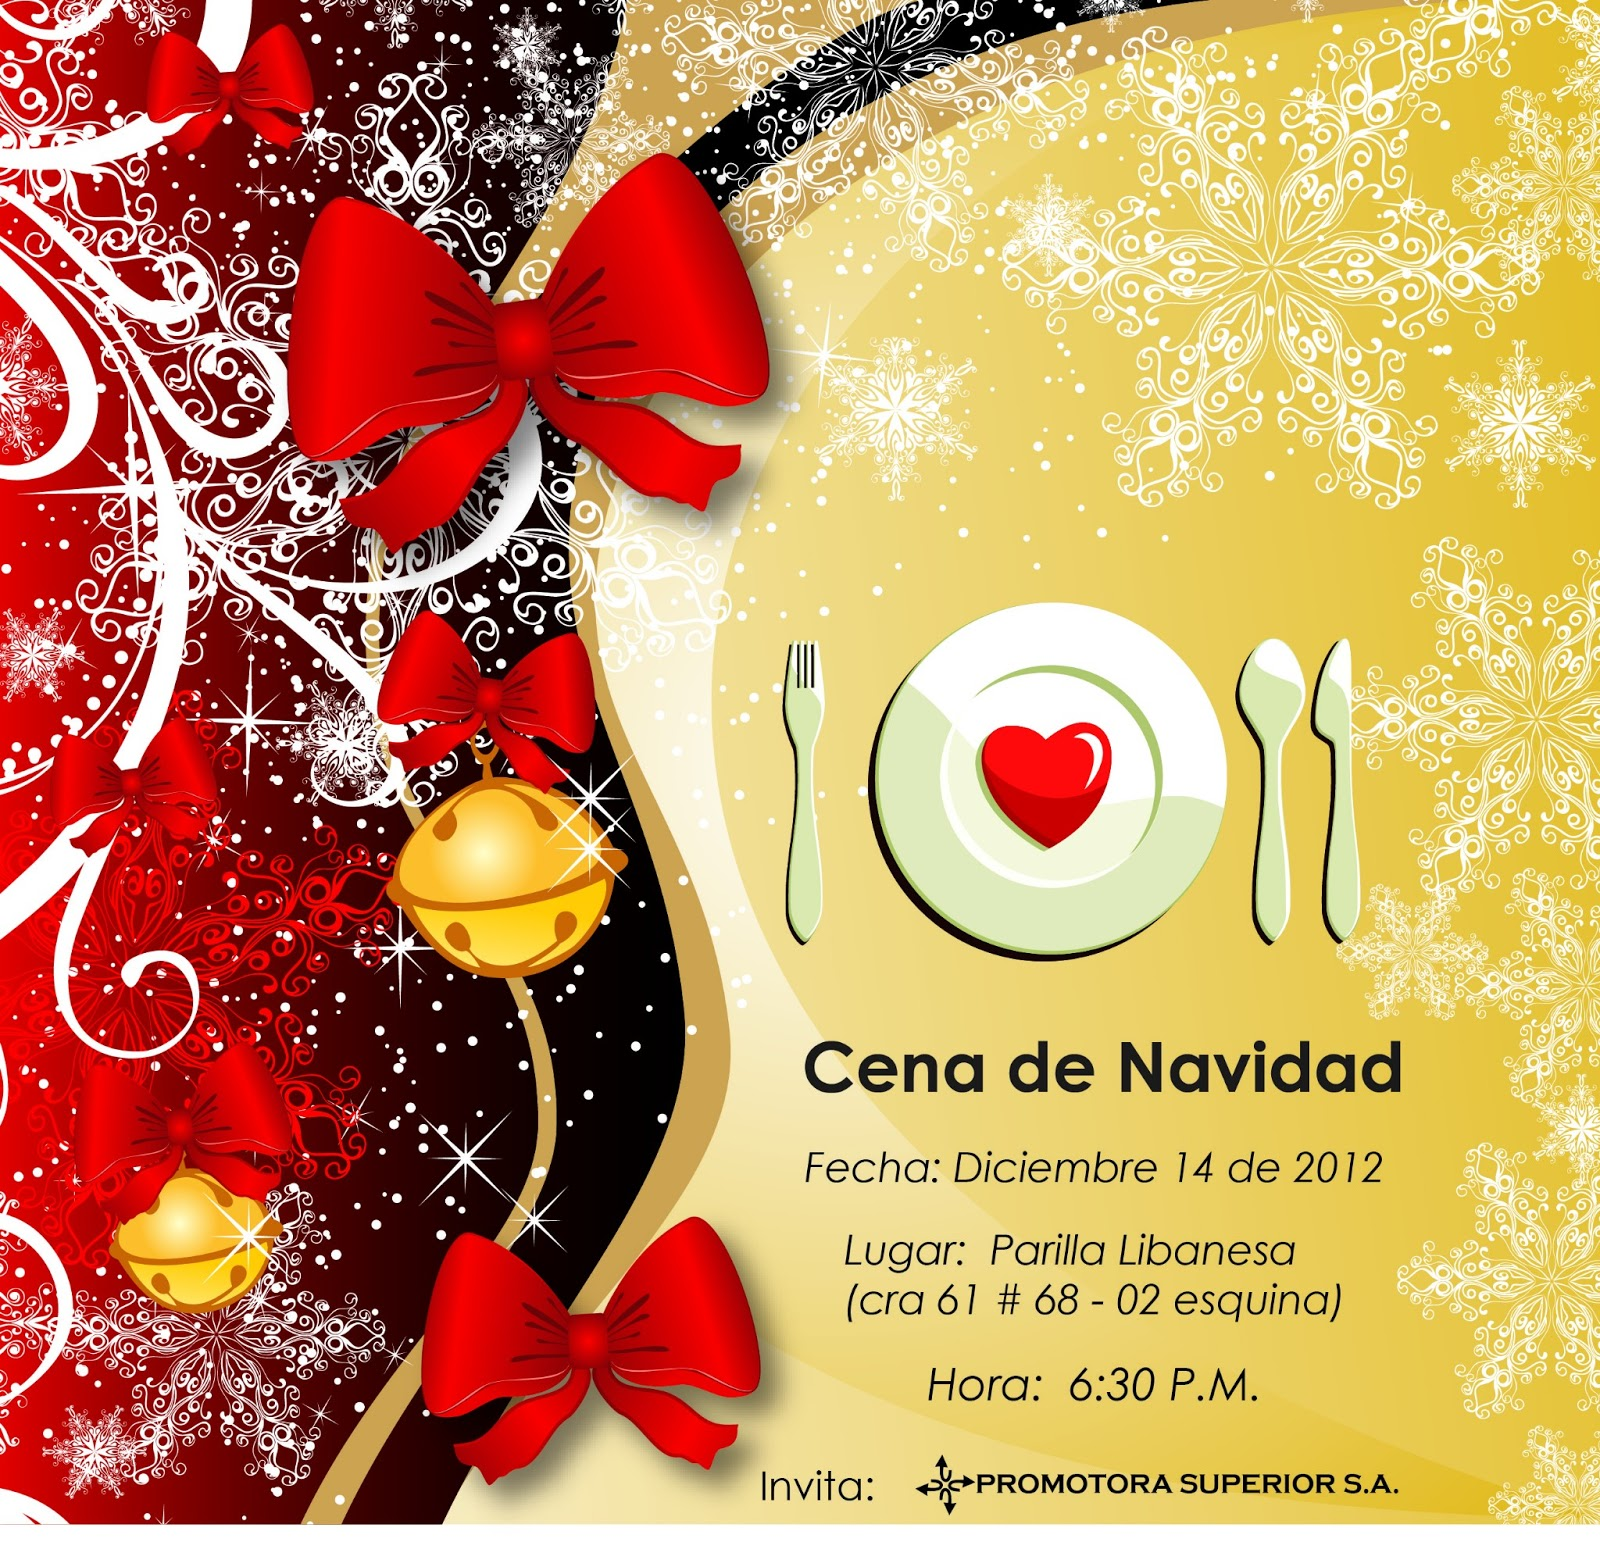 Invitacion Cena Navidad Pictures To Pin On Pinterest